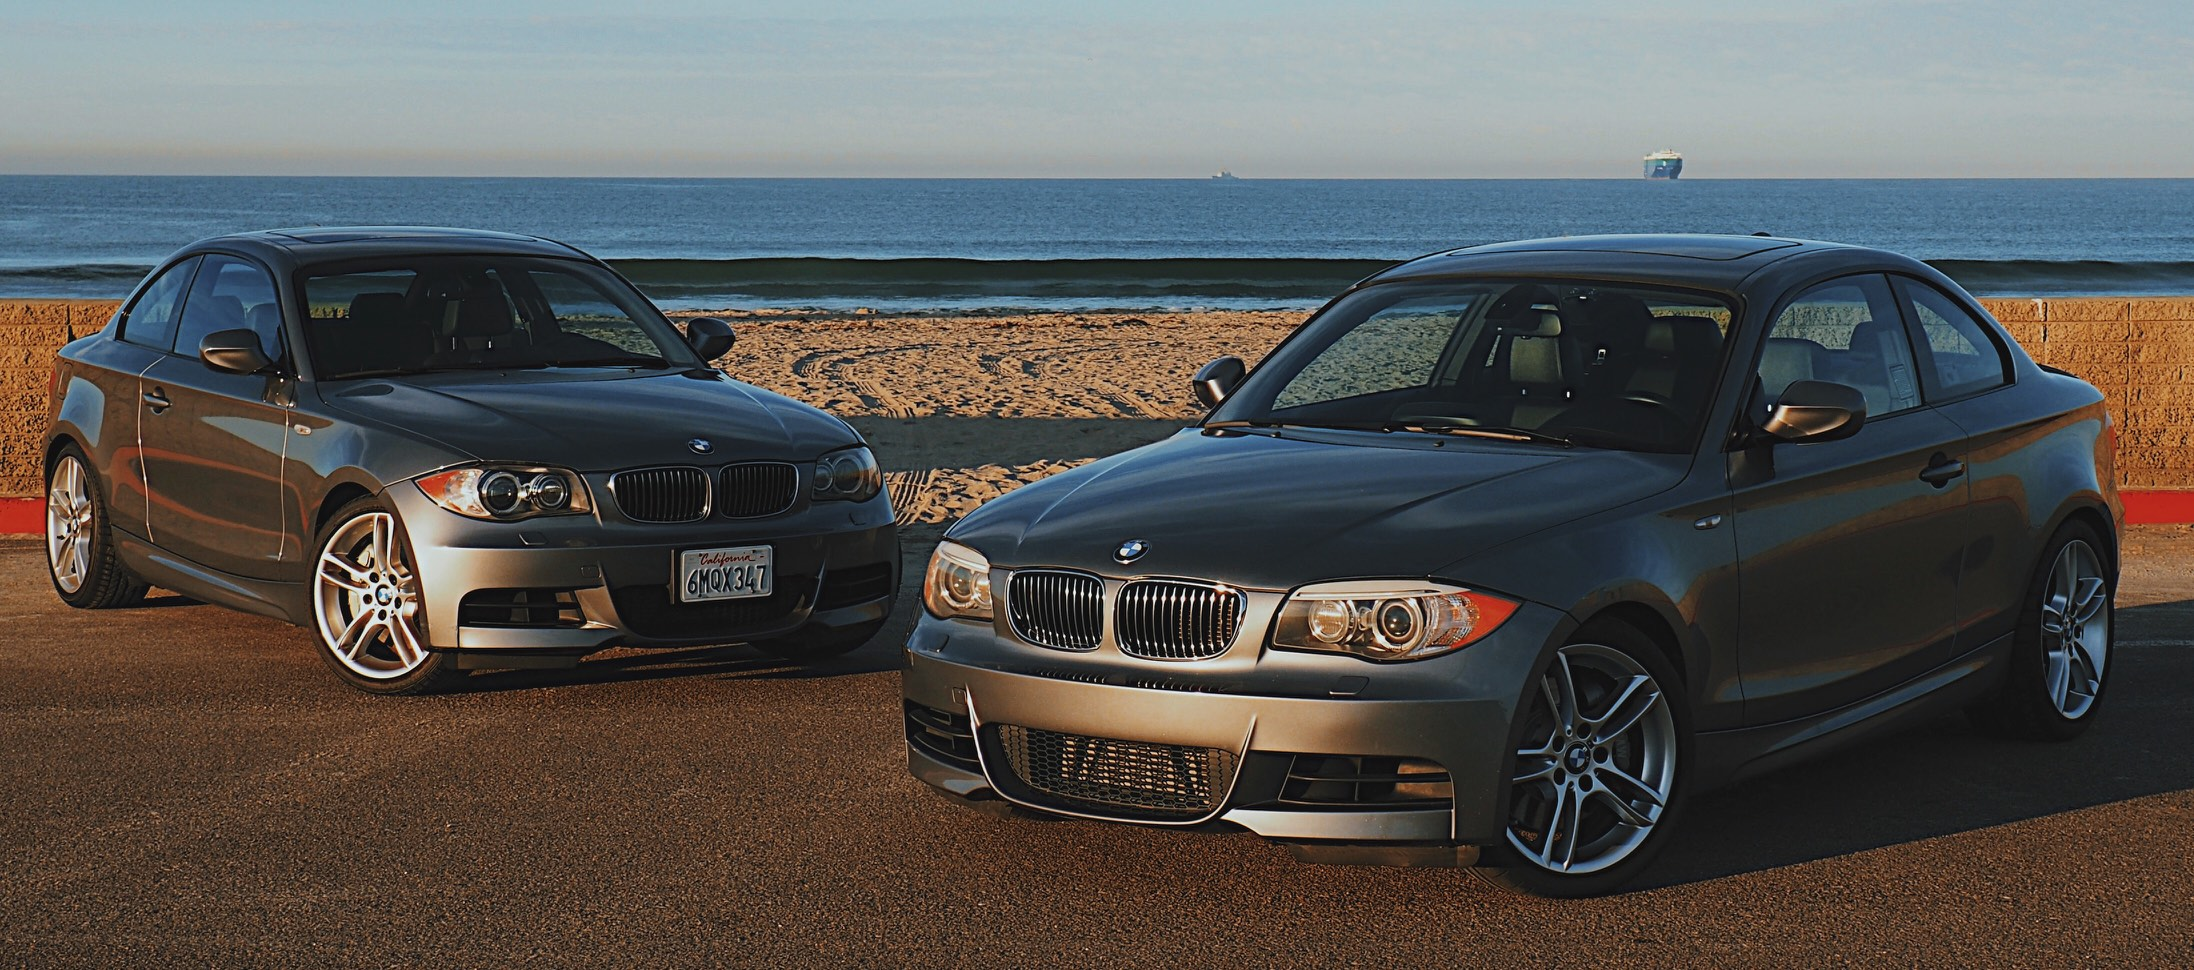 coverage car s warranty bmw reviews model driver photo depth page series original and in review